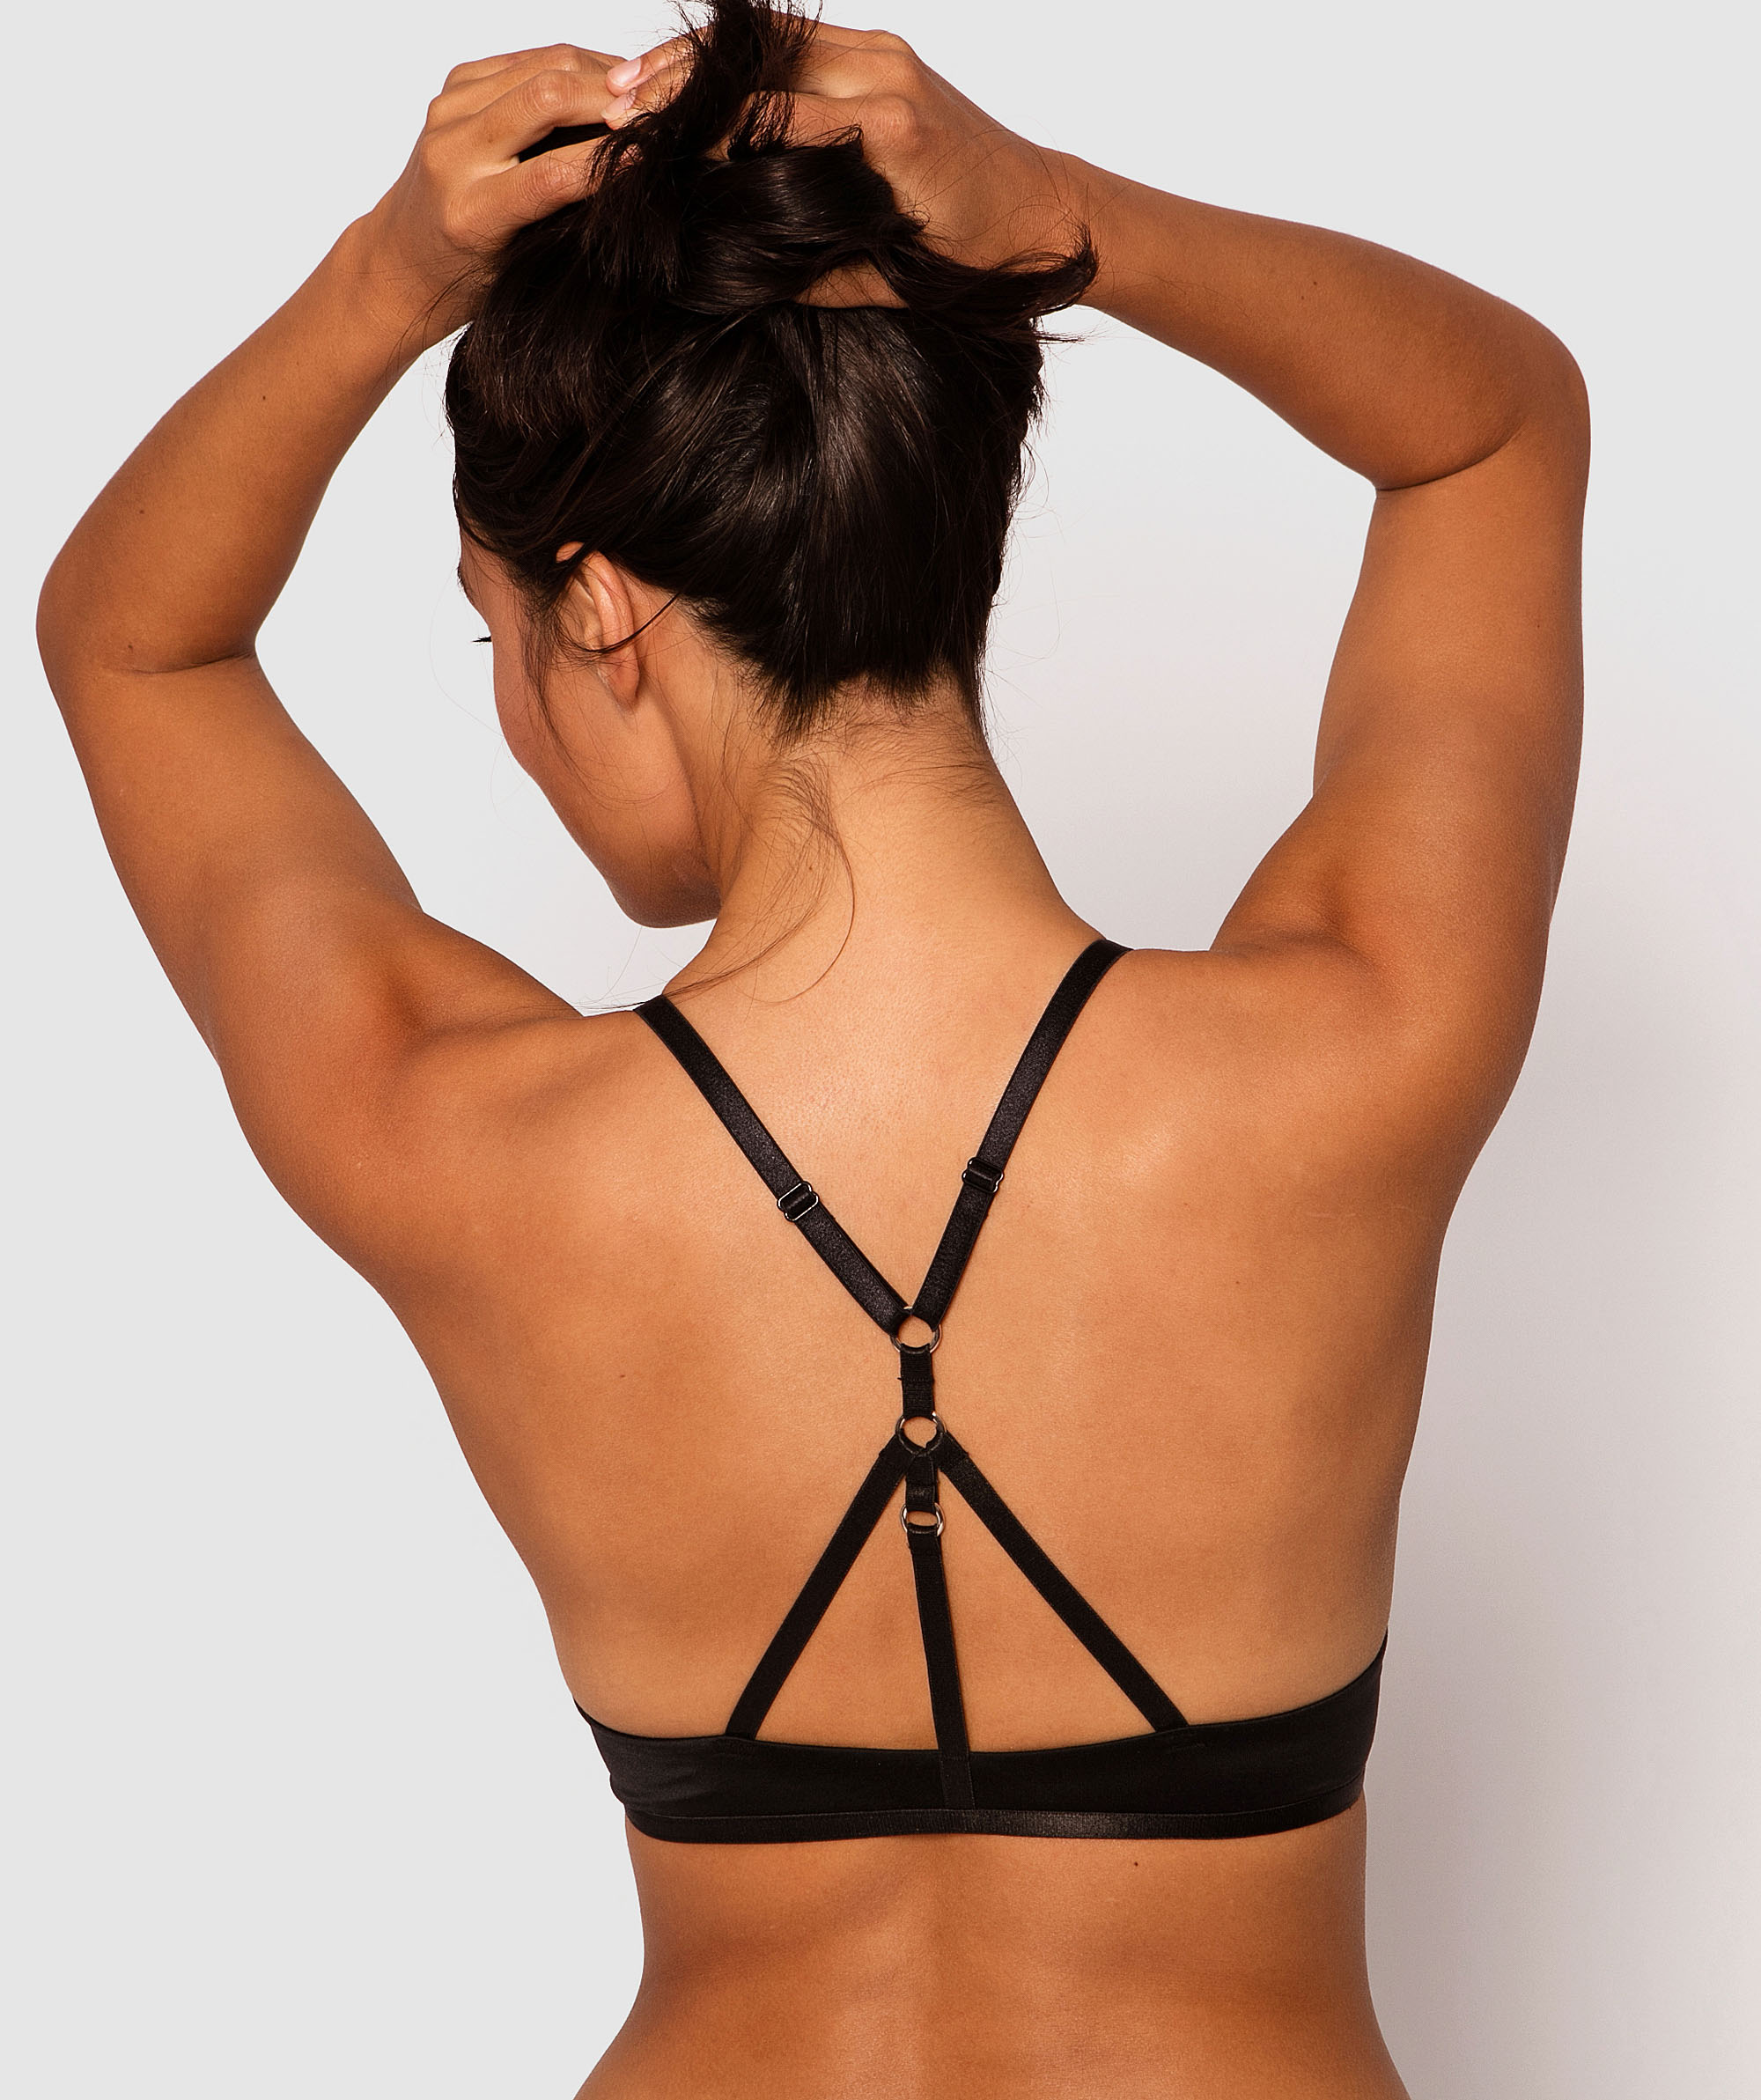 Style By Day Plunge Contour Bra - Black